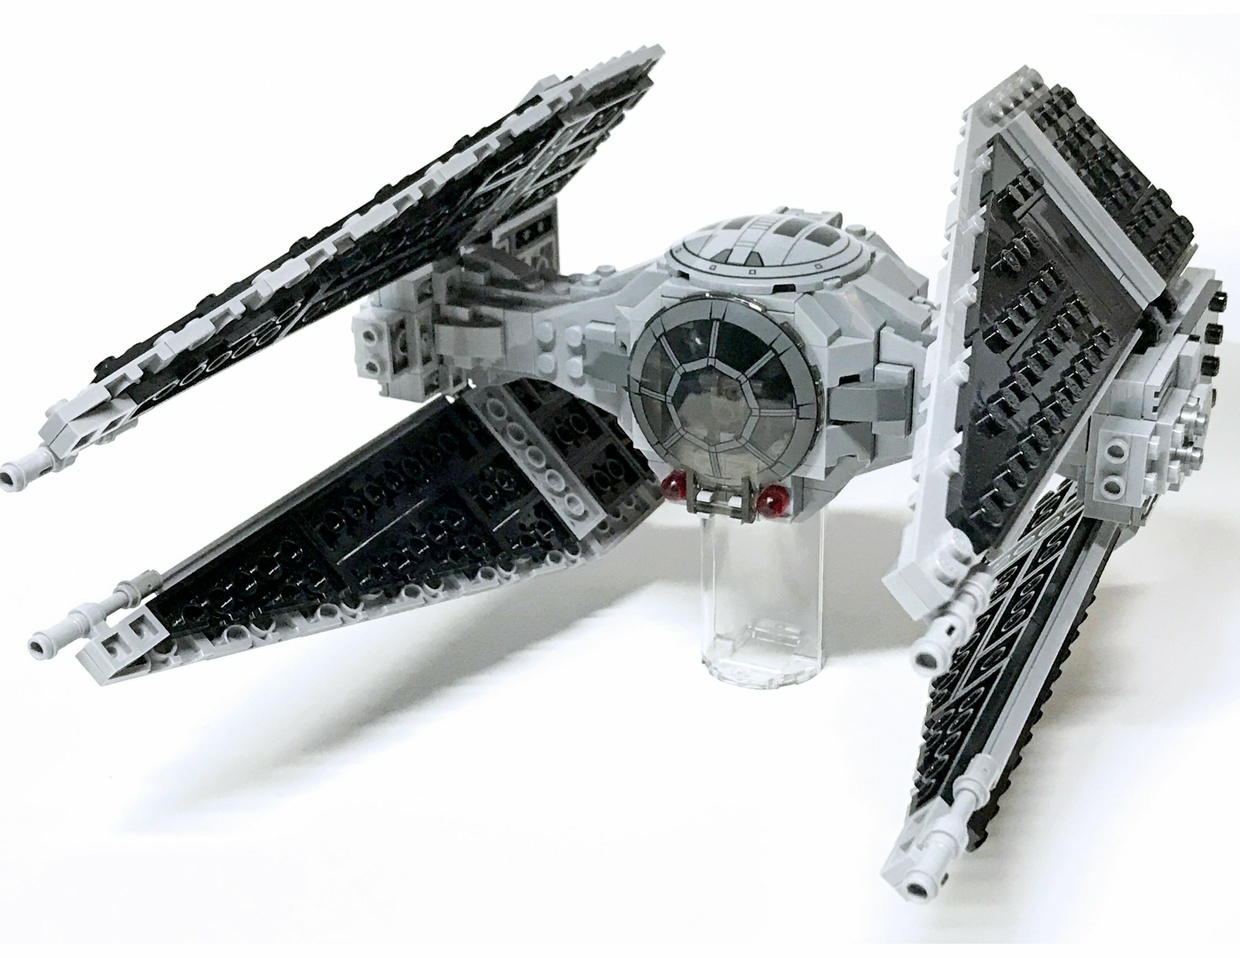 LEGO TIE Interceptor Instructions